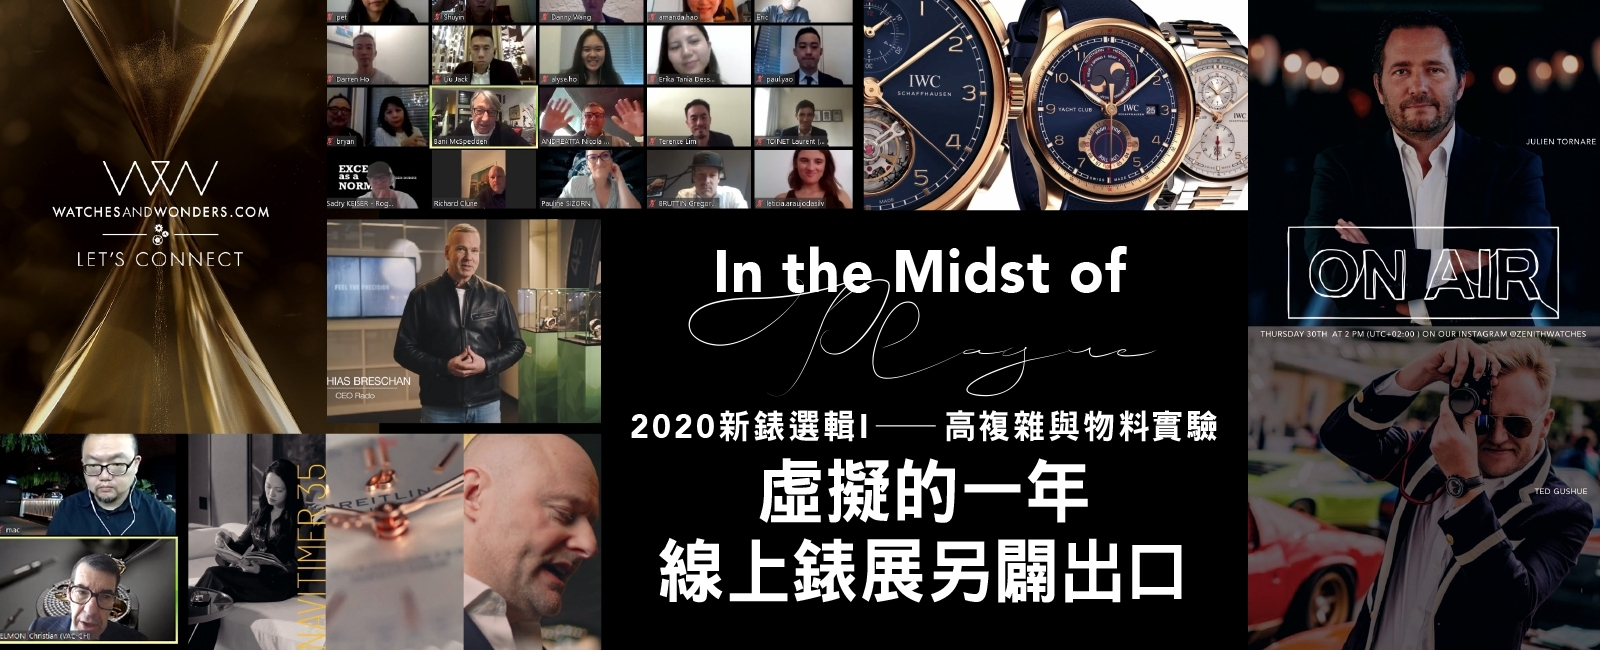 Watches & Wonders 2020 / 虛擬的一年 線上錶展另闢出口 In the Midst of Plague